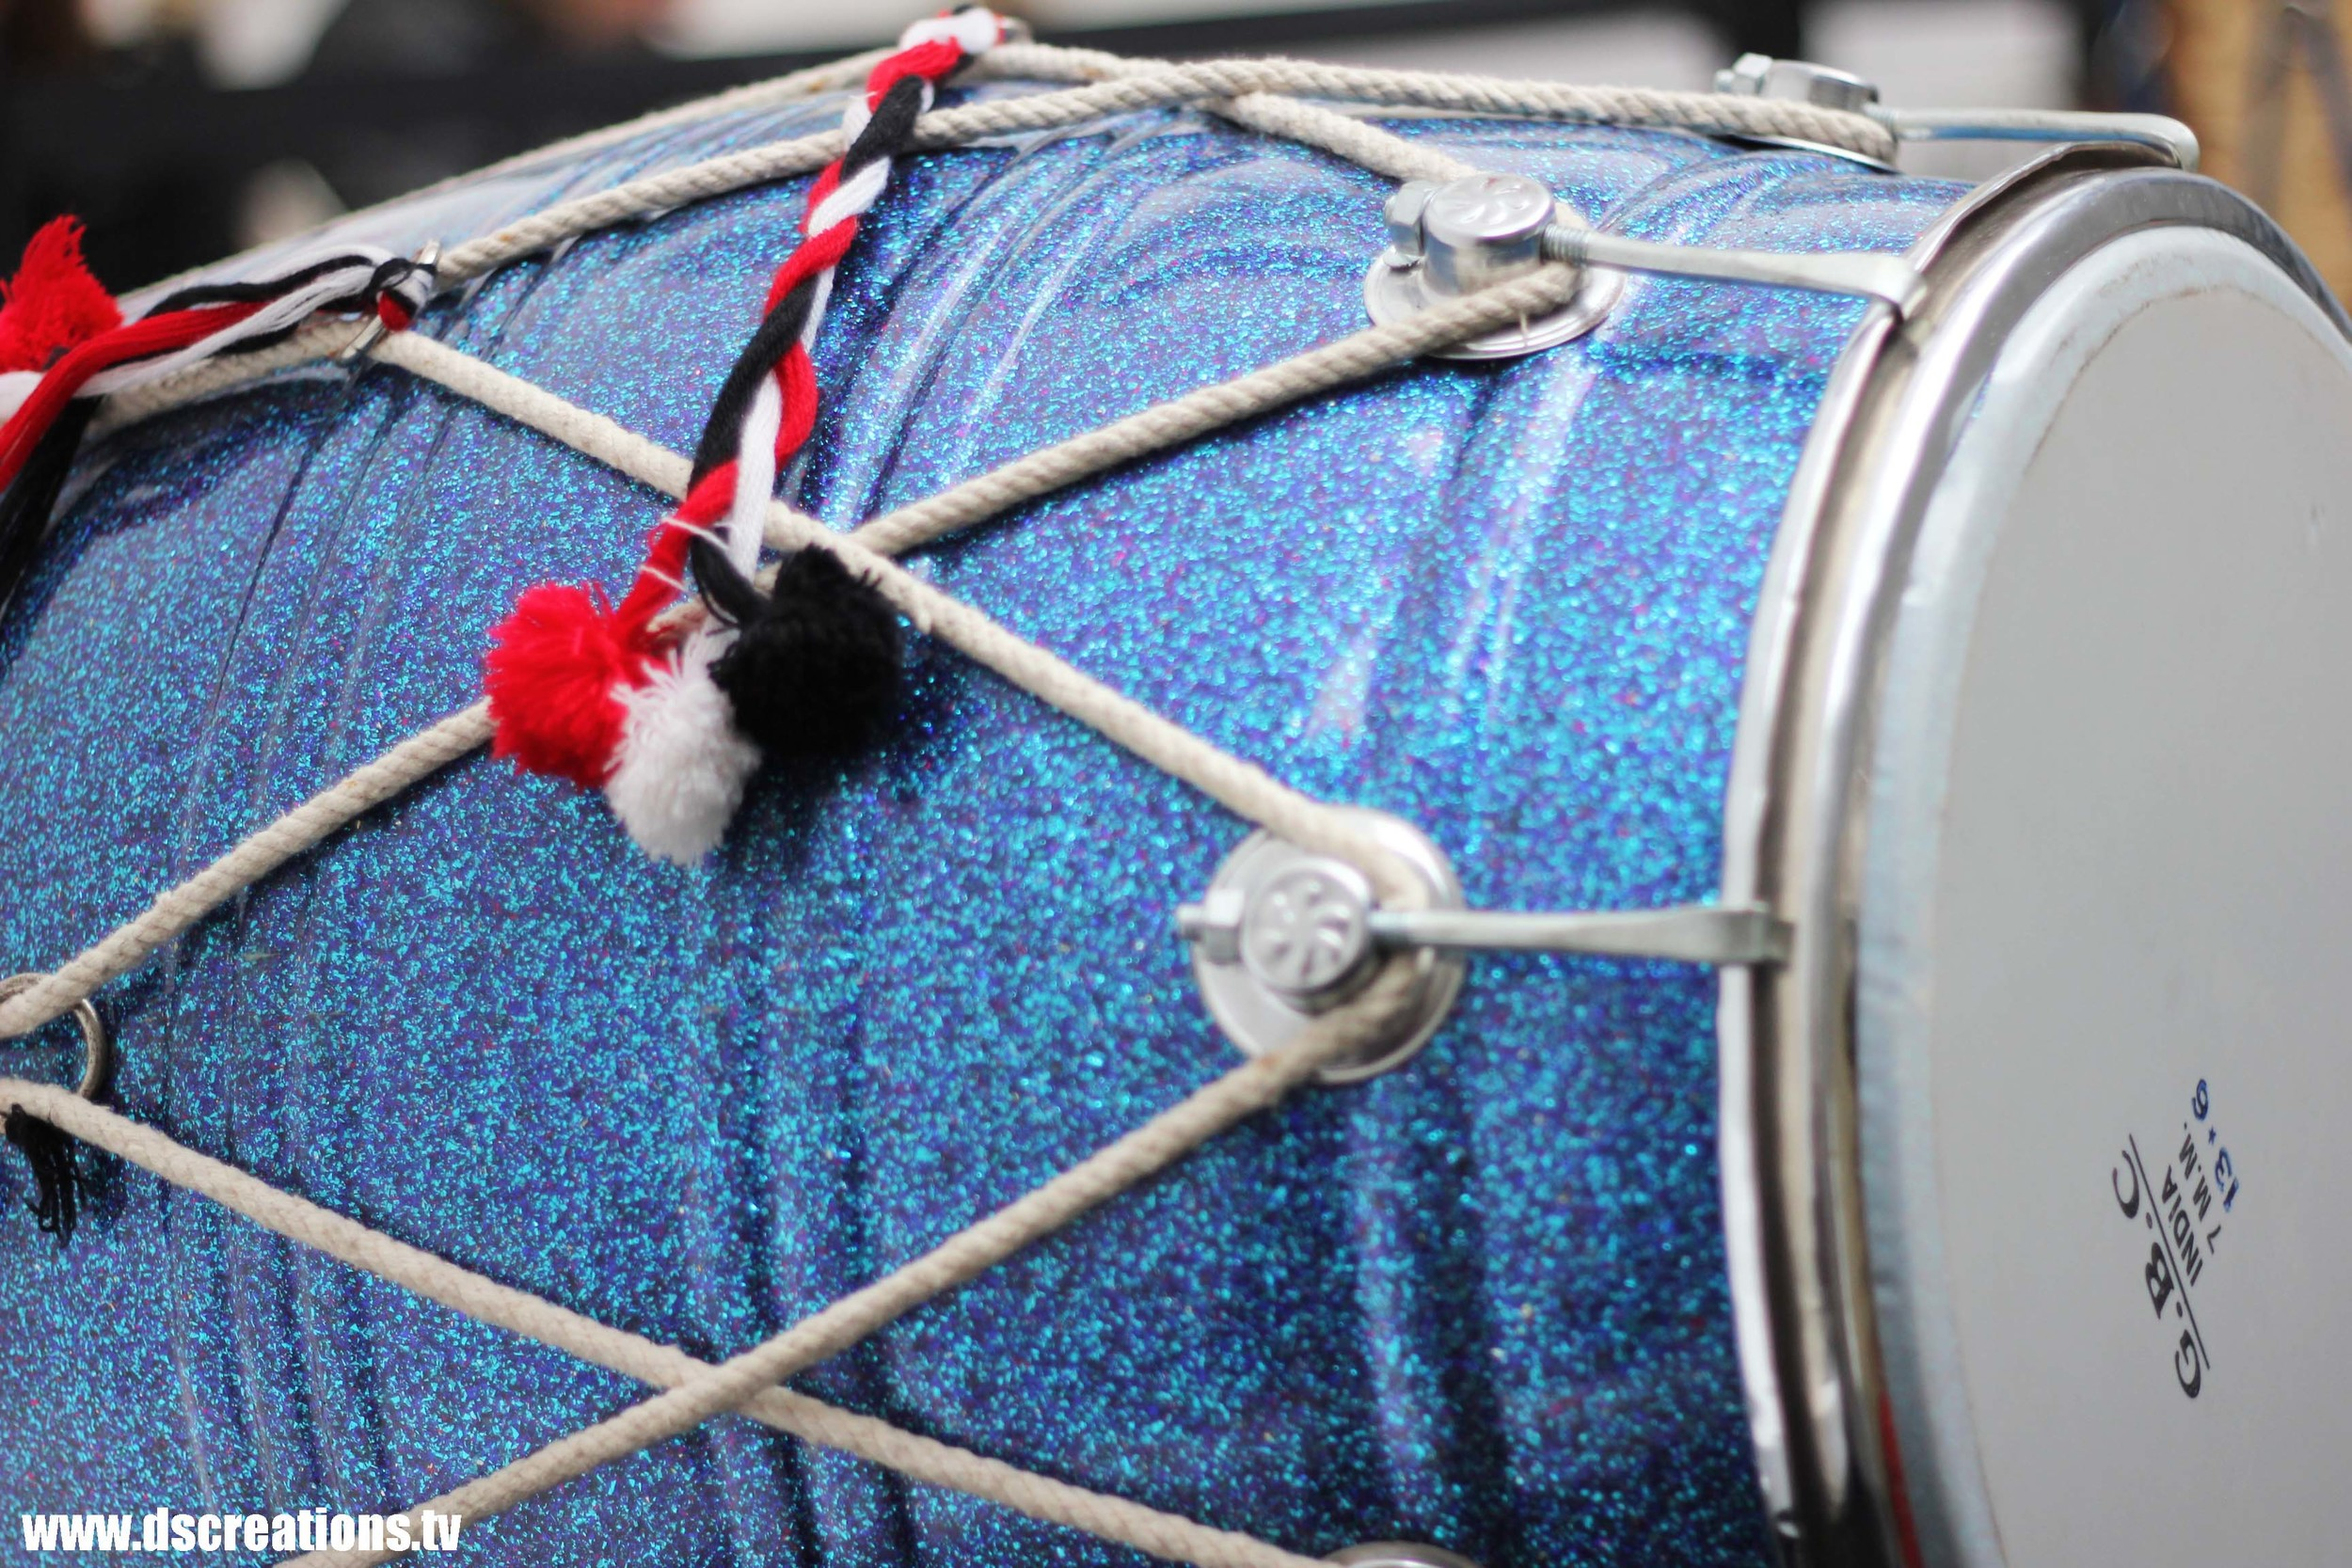 national media museum staff dhol blue